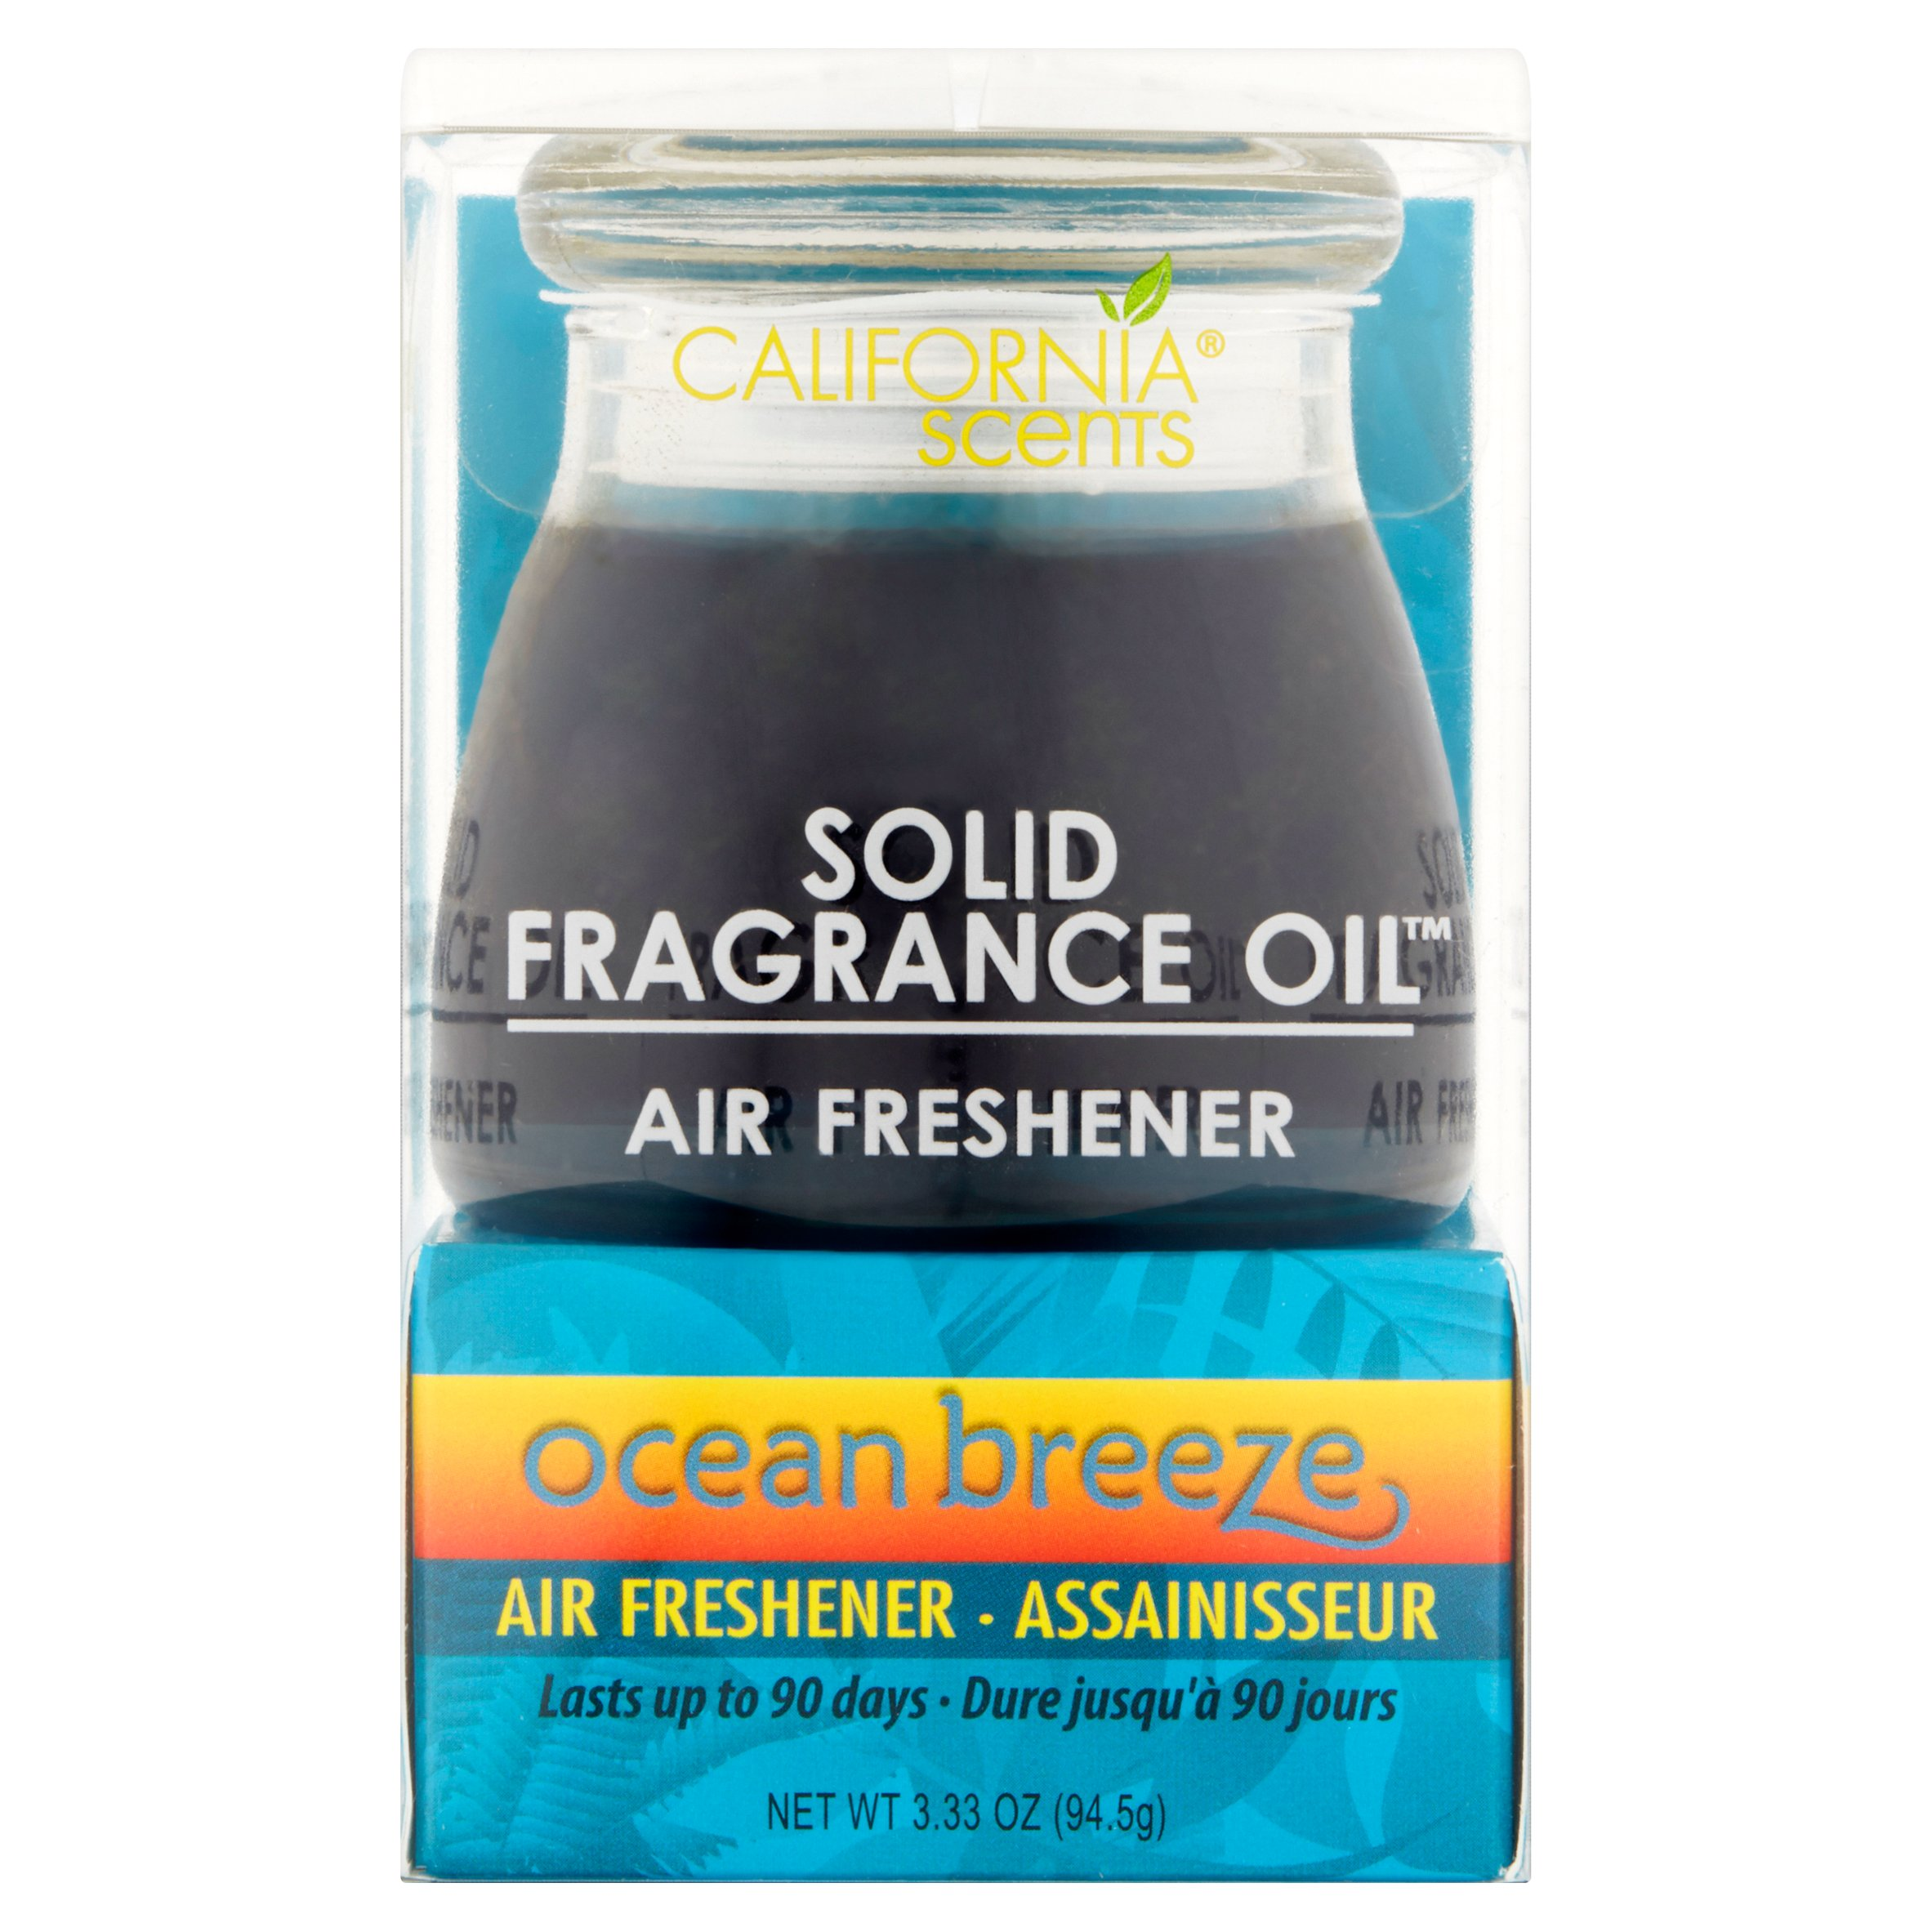 California Scents Solid Fragrance Oil Ocean Breeze Oil Air Freshener, 3.33 oz, 6 pack